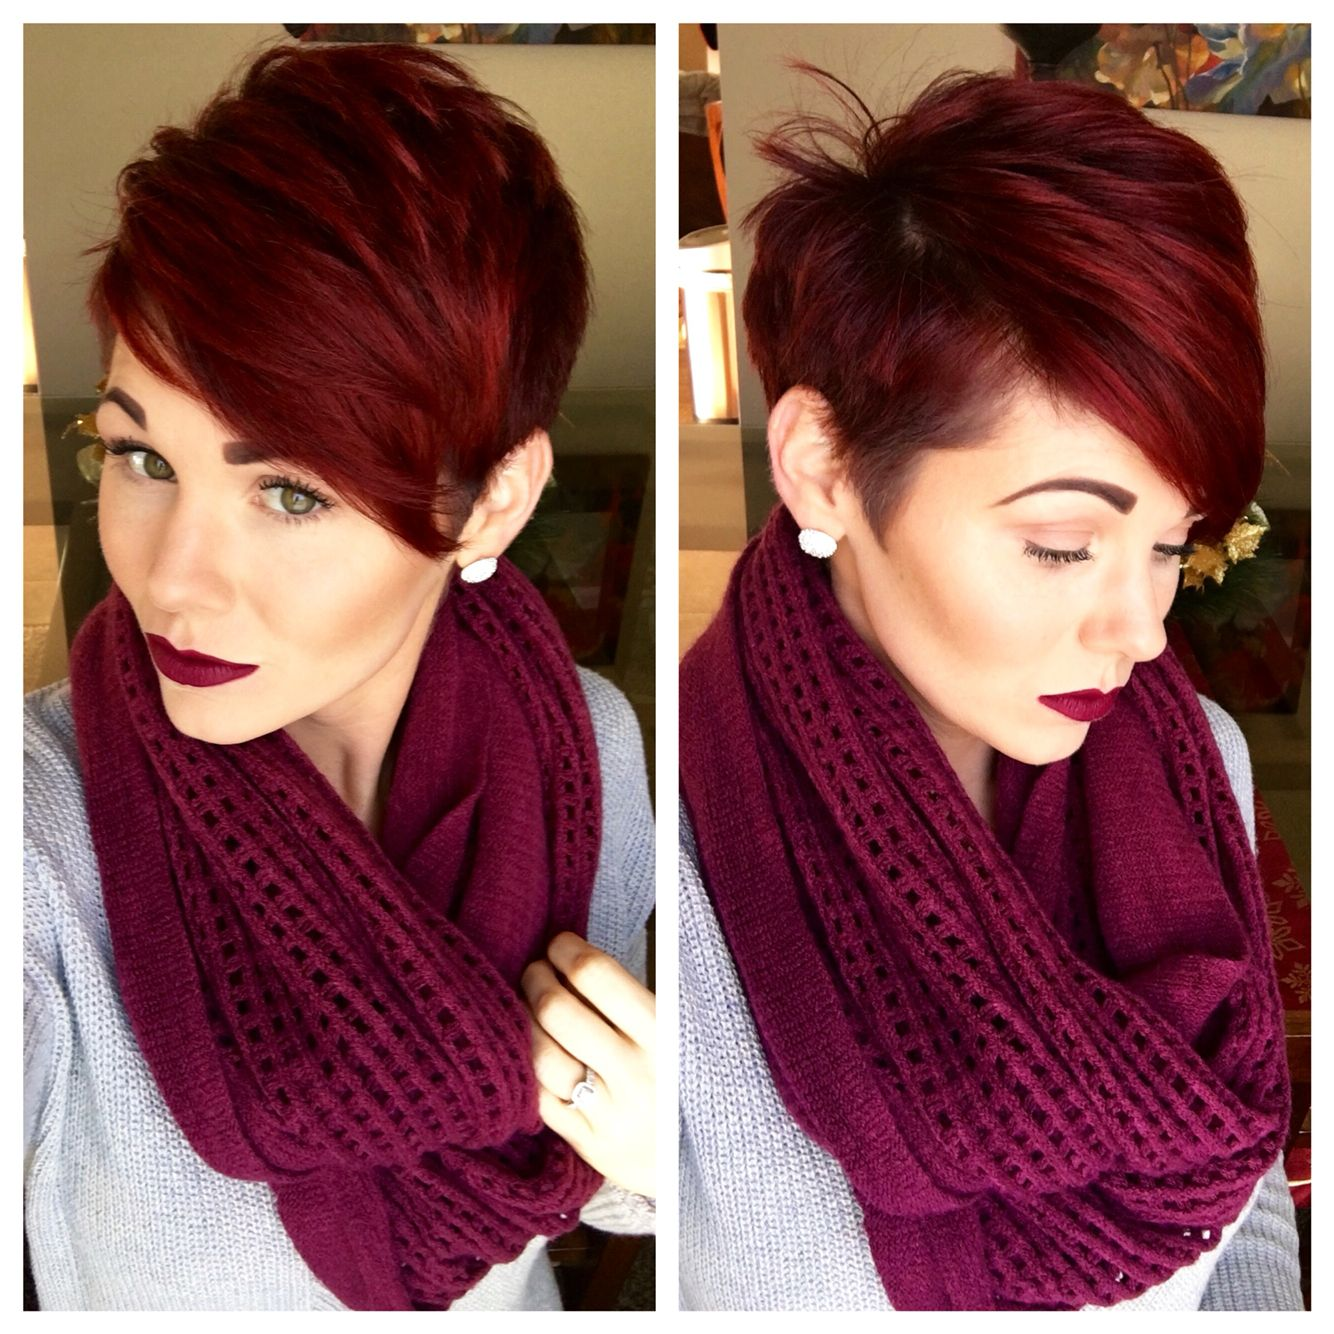 pixie cut and red violet hair | hairstyles/inspiration | pinterest